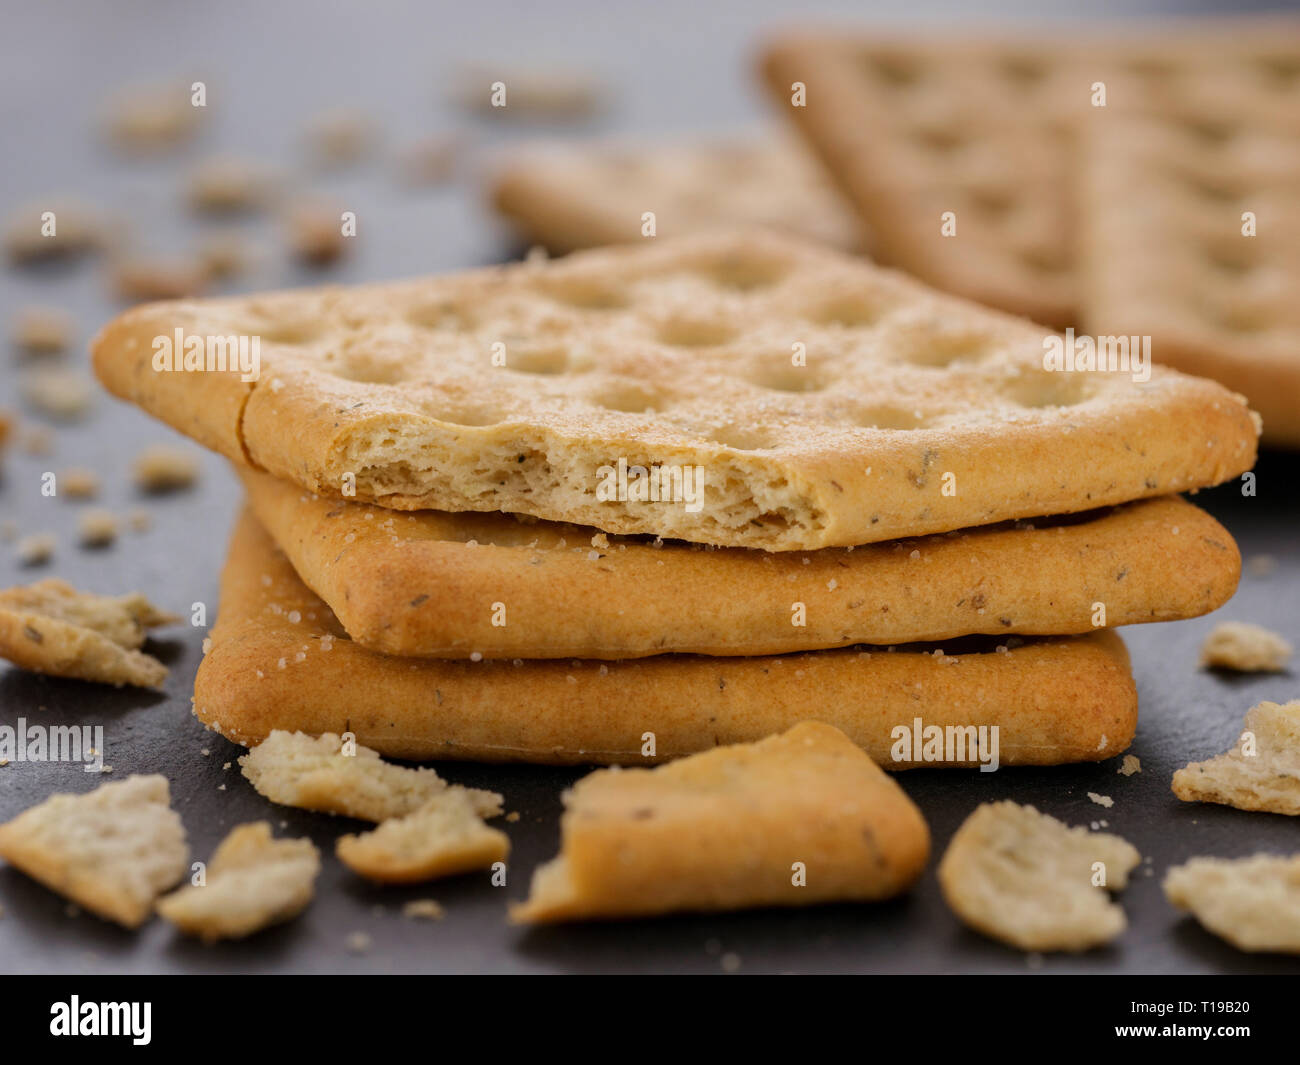 stack of square crackers with pieces and crumbs on slate gray background. Dry salt cracker cookies with fiber and dry spices Stock Photo